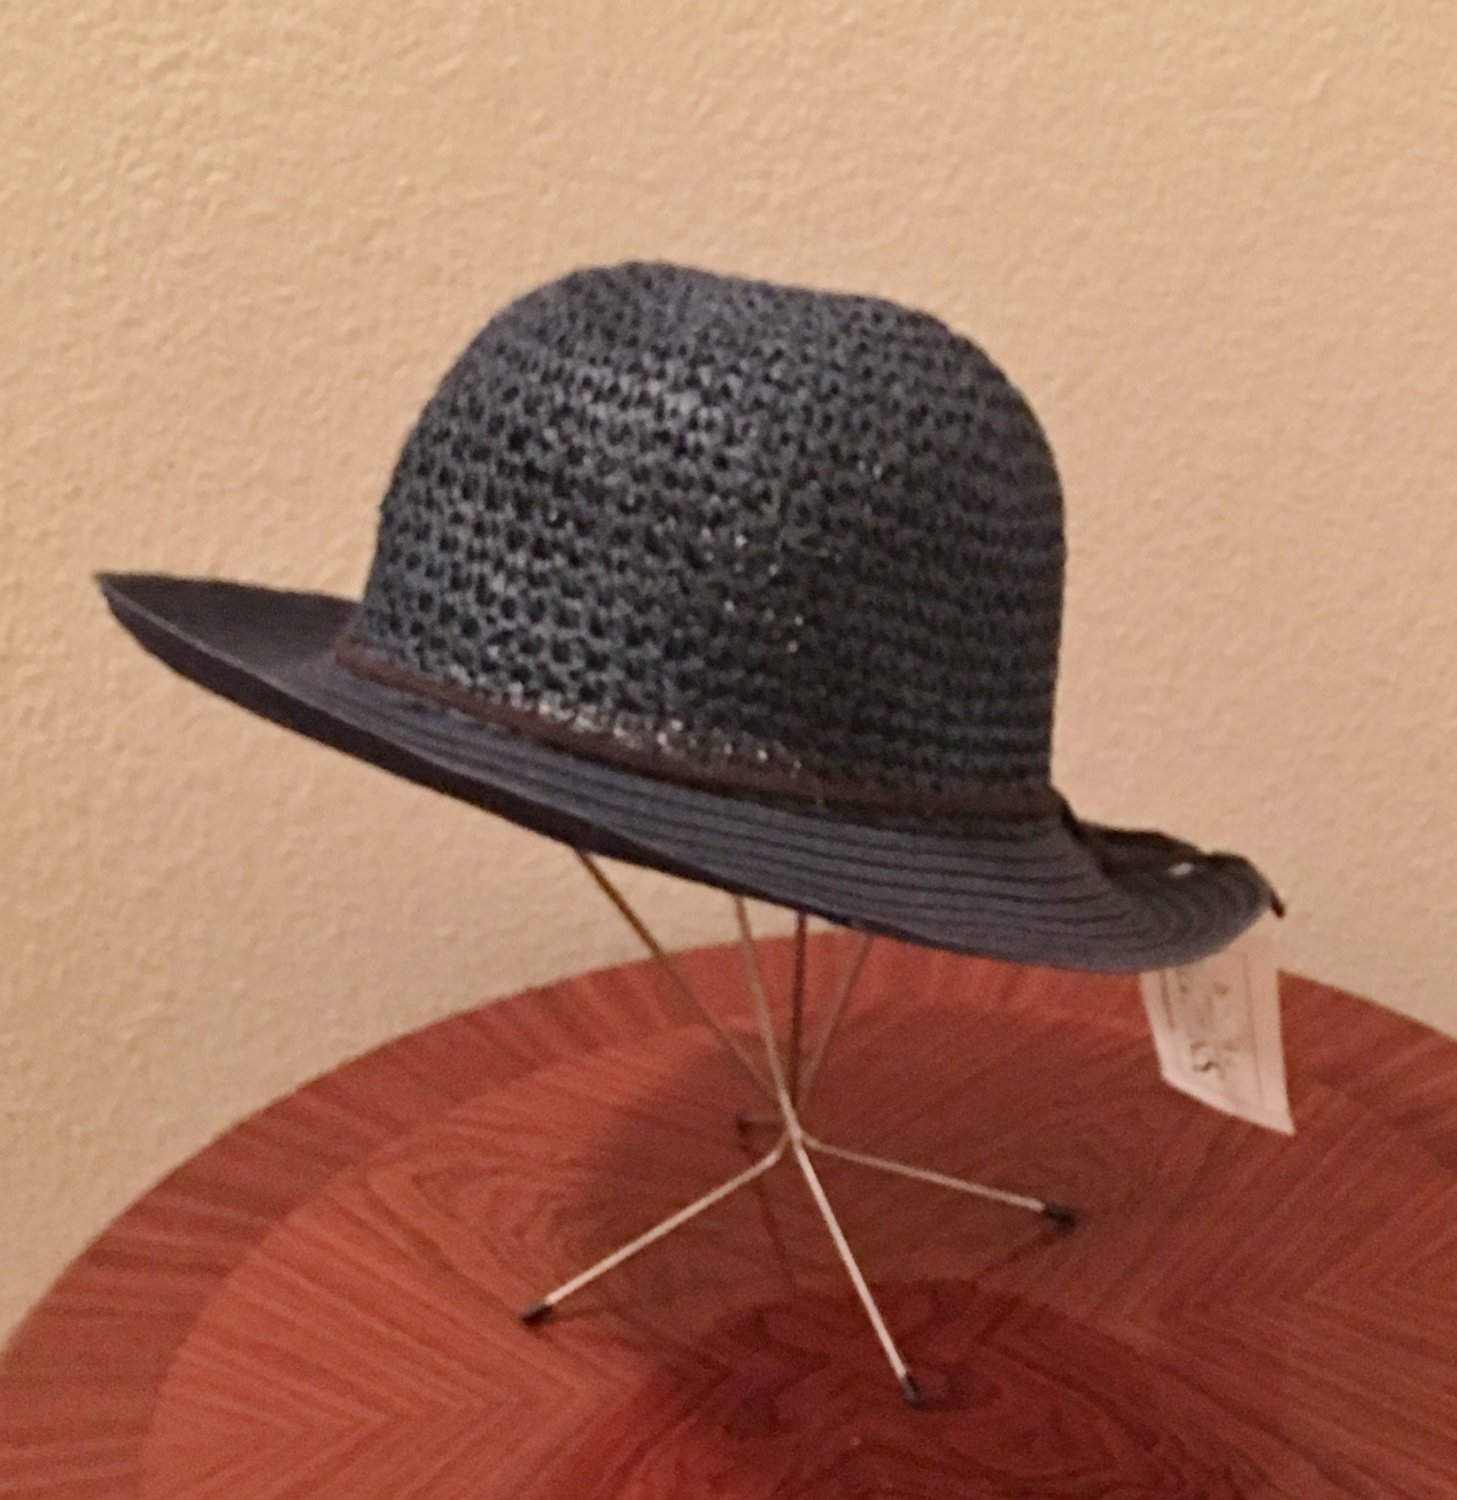 NWT Ladies STRAW HAT Sunhat Crushable/Packable NAVY BLUE One Size Fits All